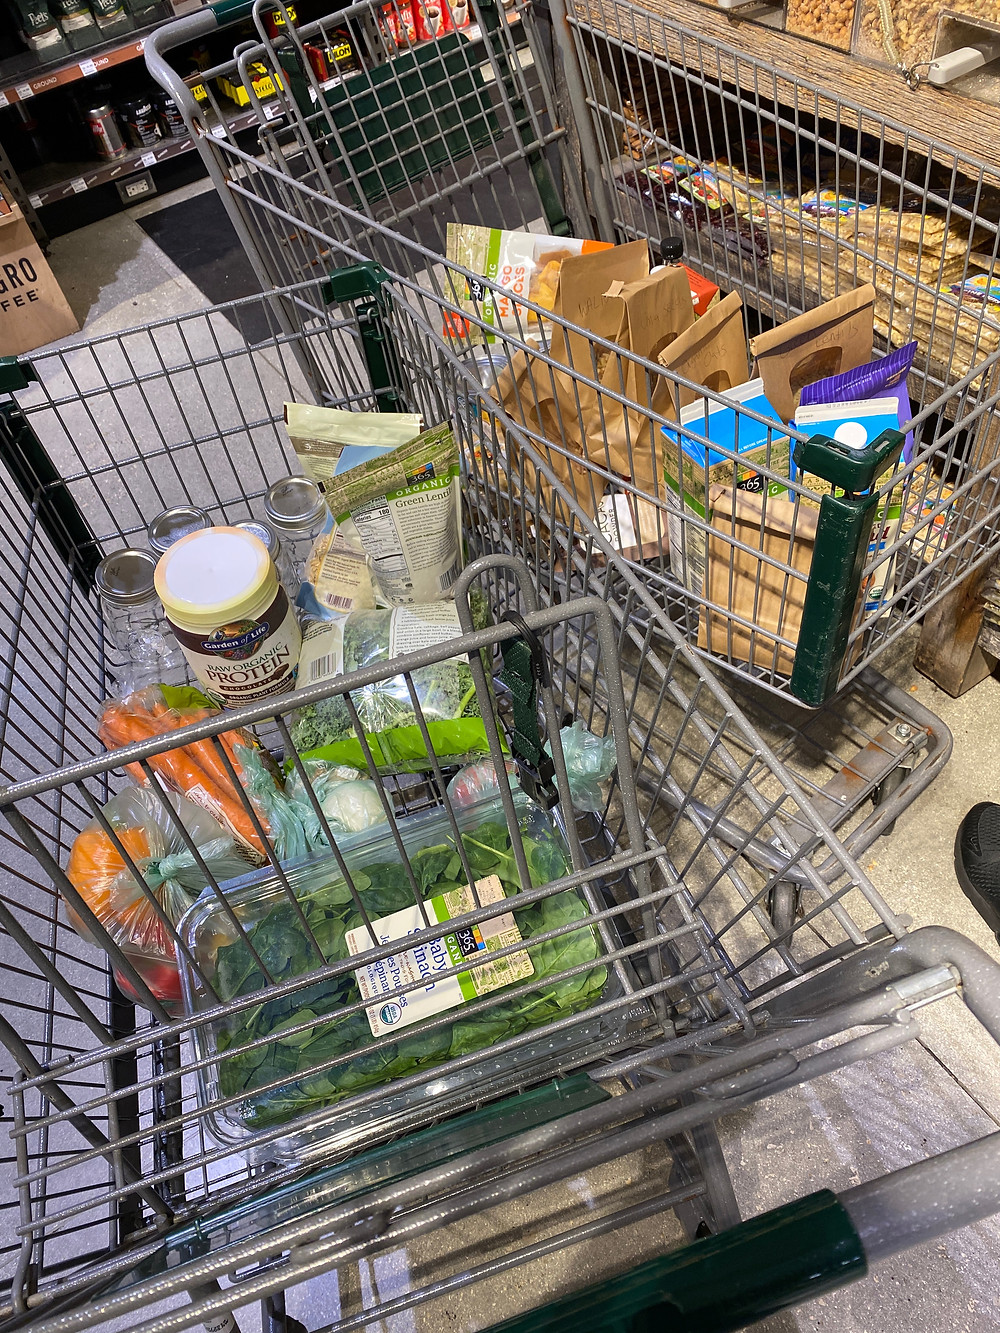 Two shopping carts with vegan groceries